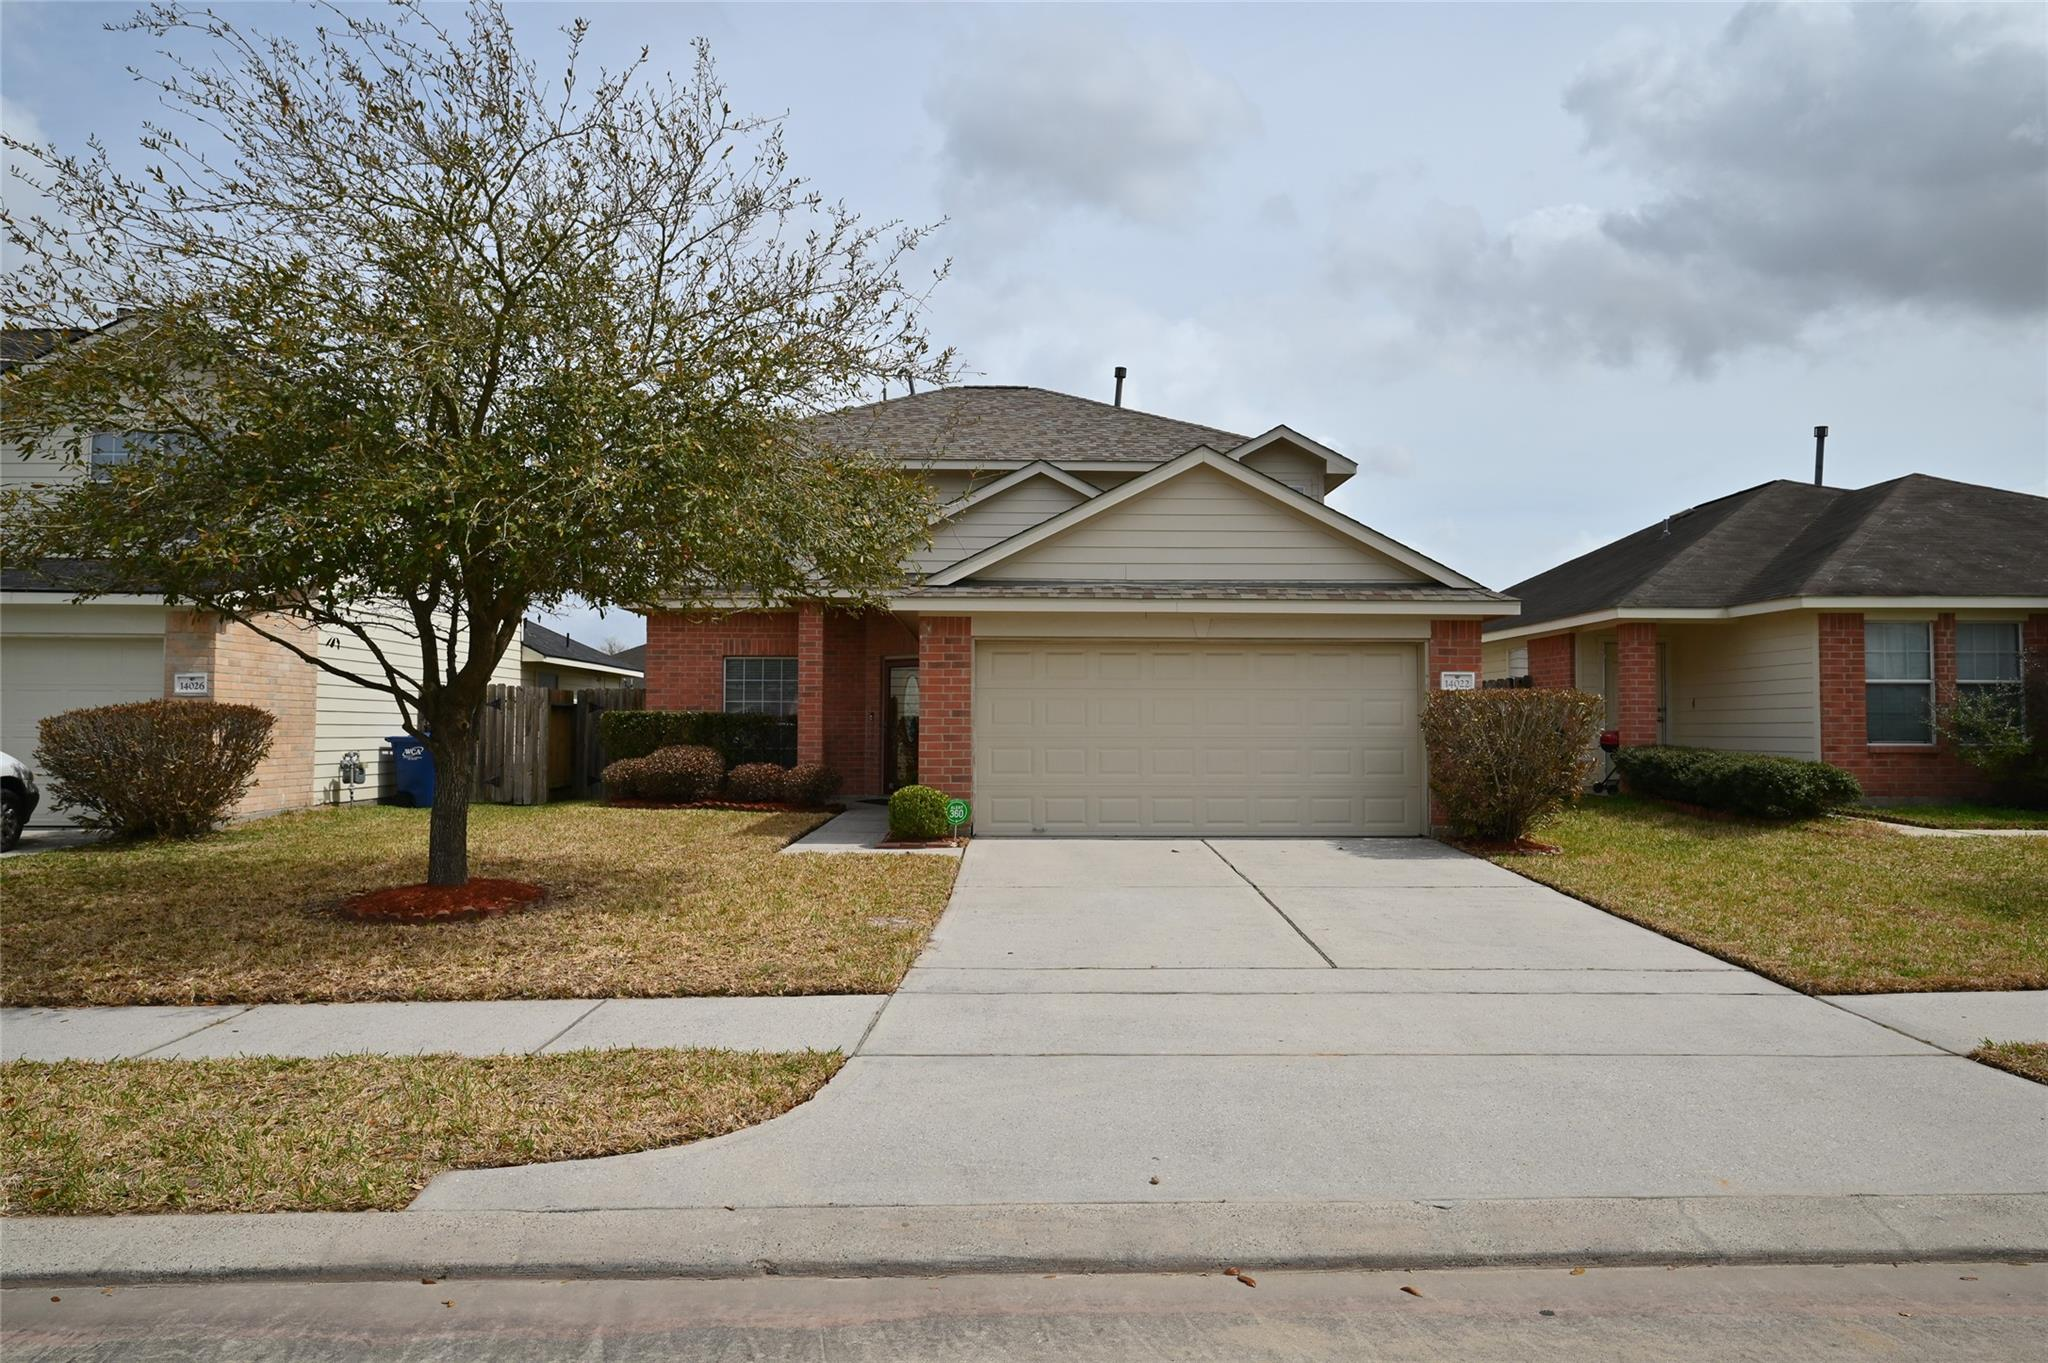 14022 Crestbourne Court Nw #0 Property Photo